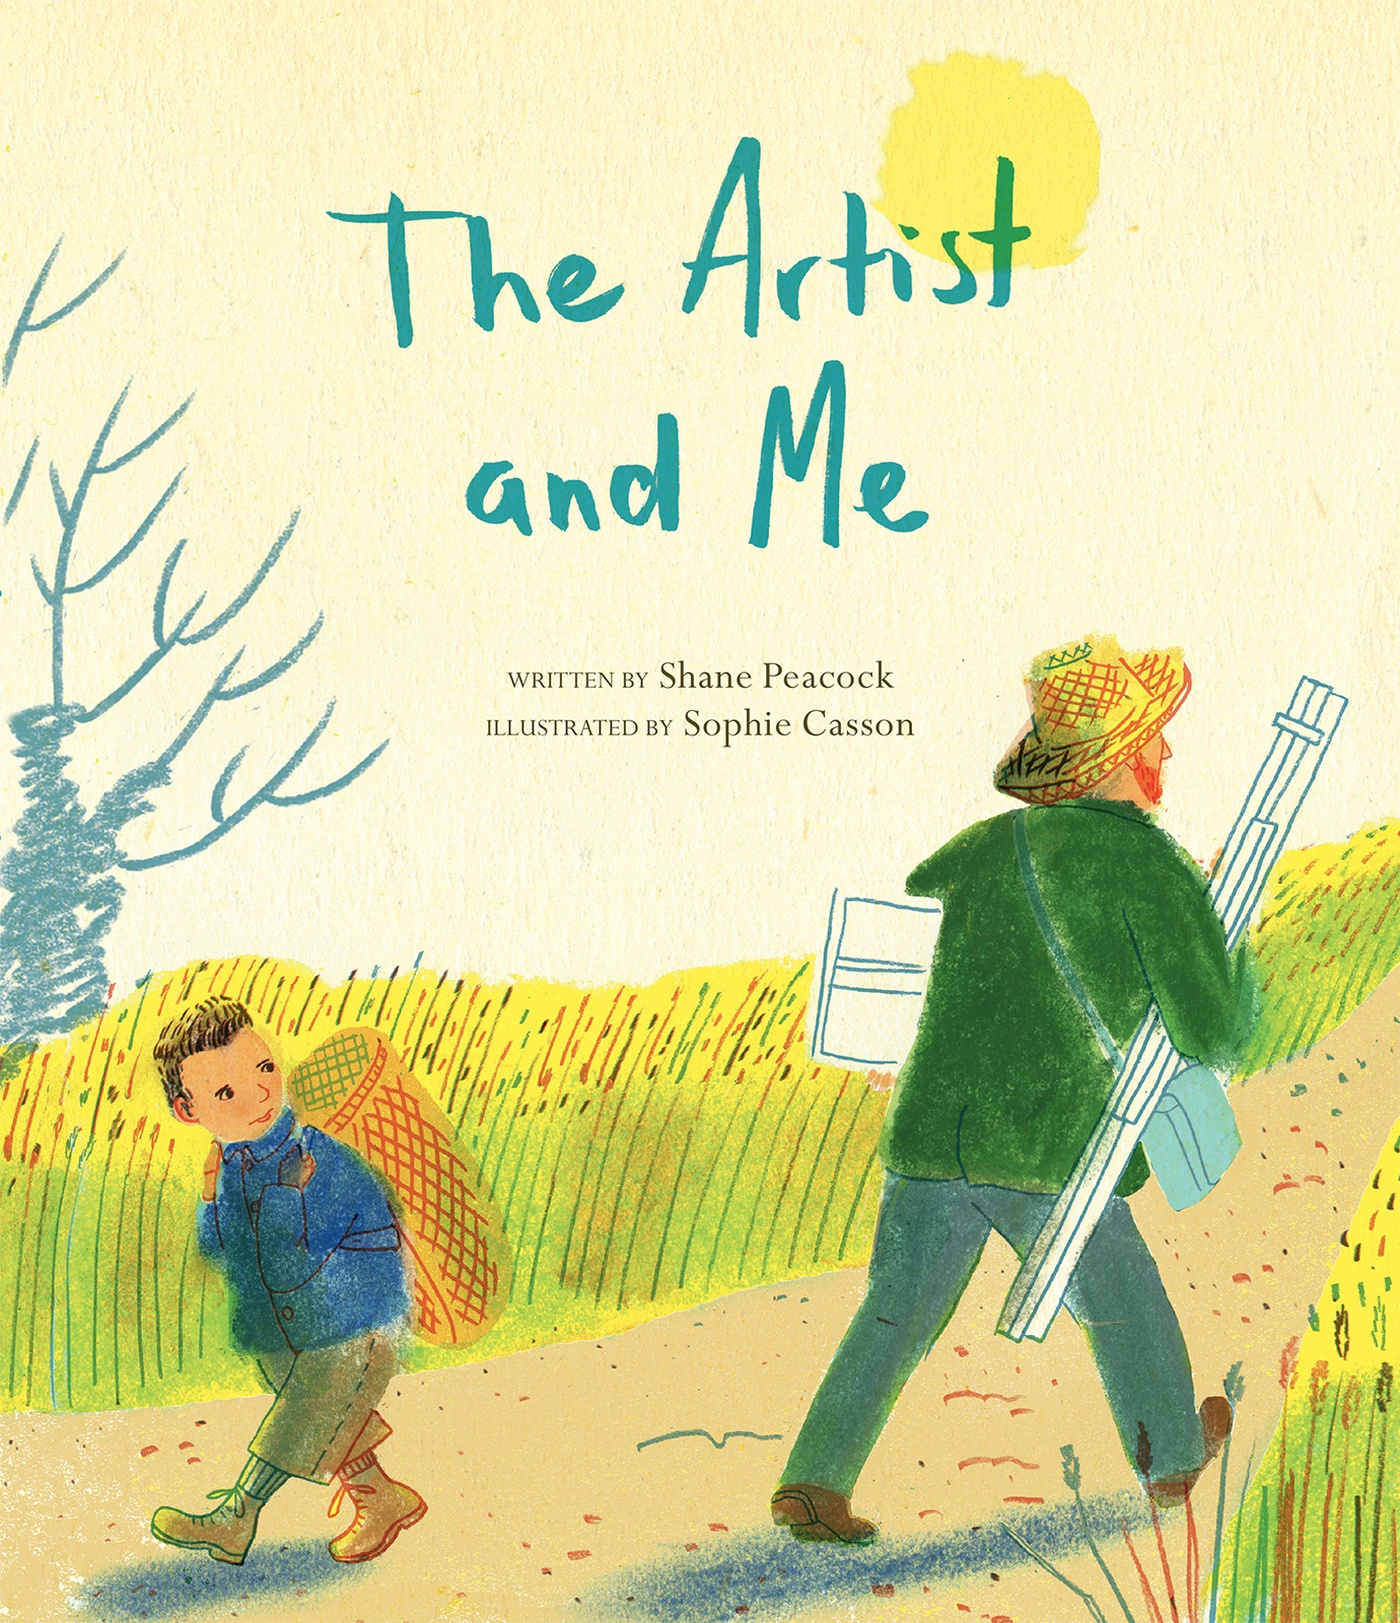 Sophie Casson - The Artist and Me